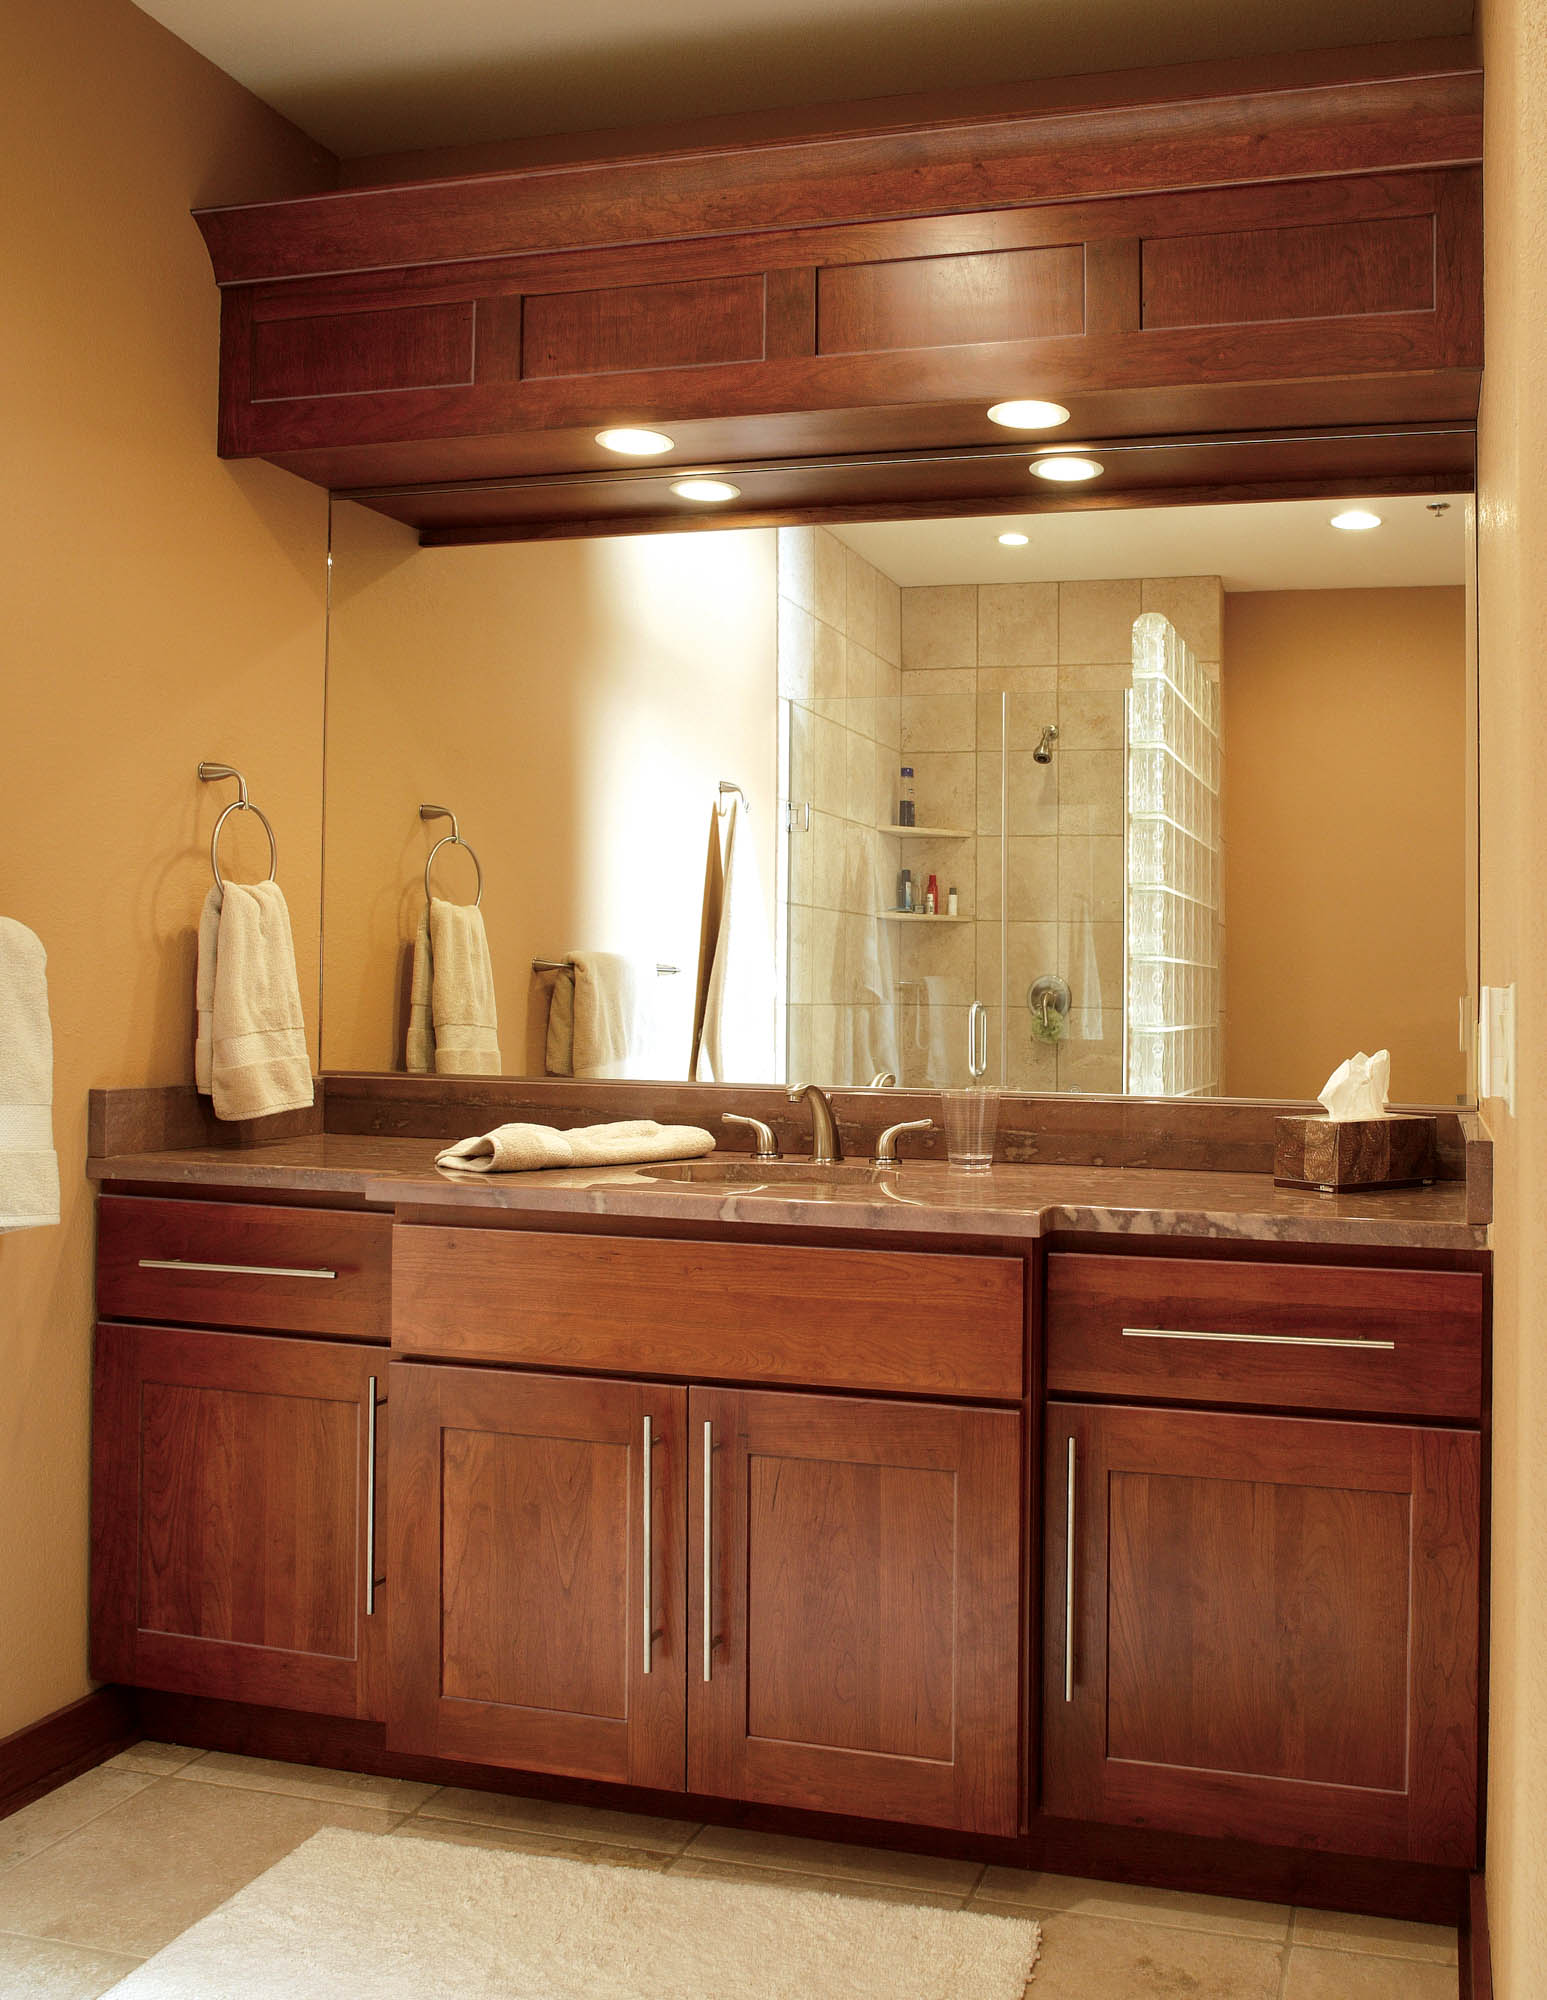 Stained bathroom cabinets in Cayenne by Showplace Cabinetry - view 1